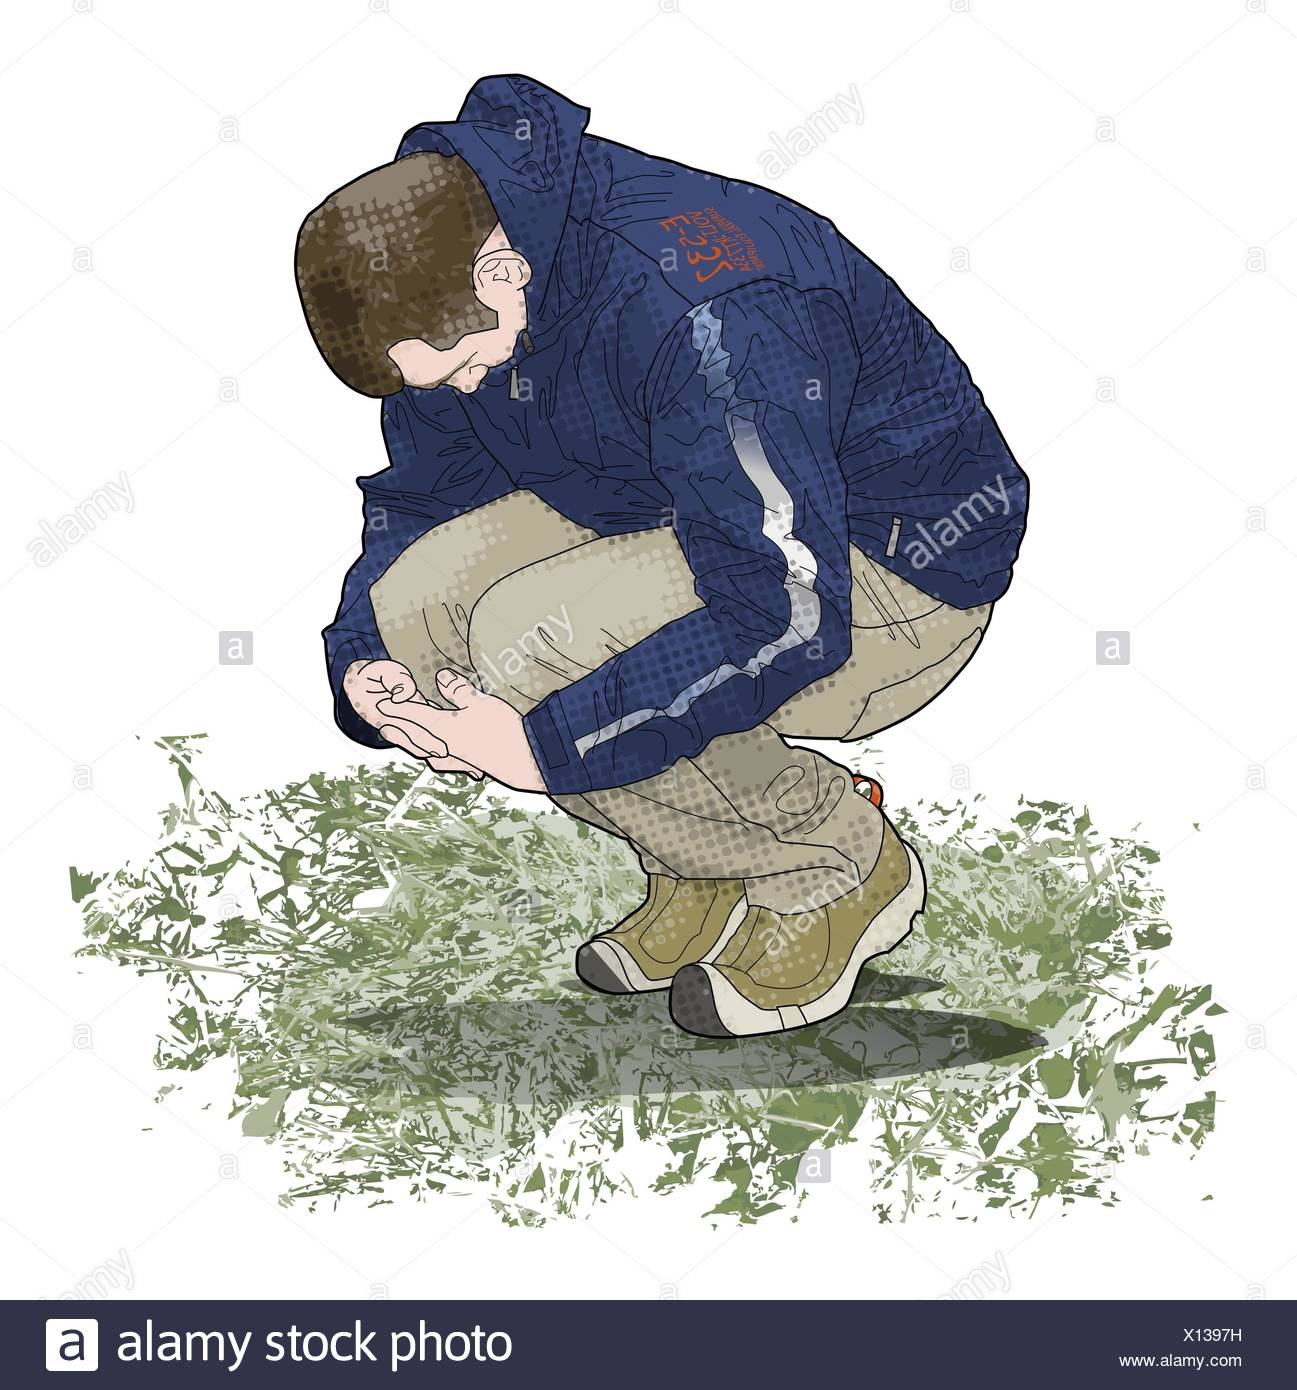 Digital illustration of man crouching on ground looking down and holding knees Stock Photo